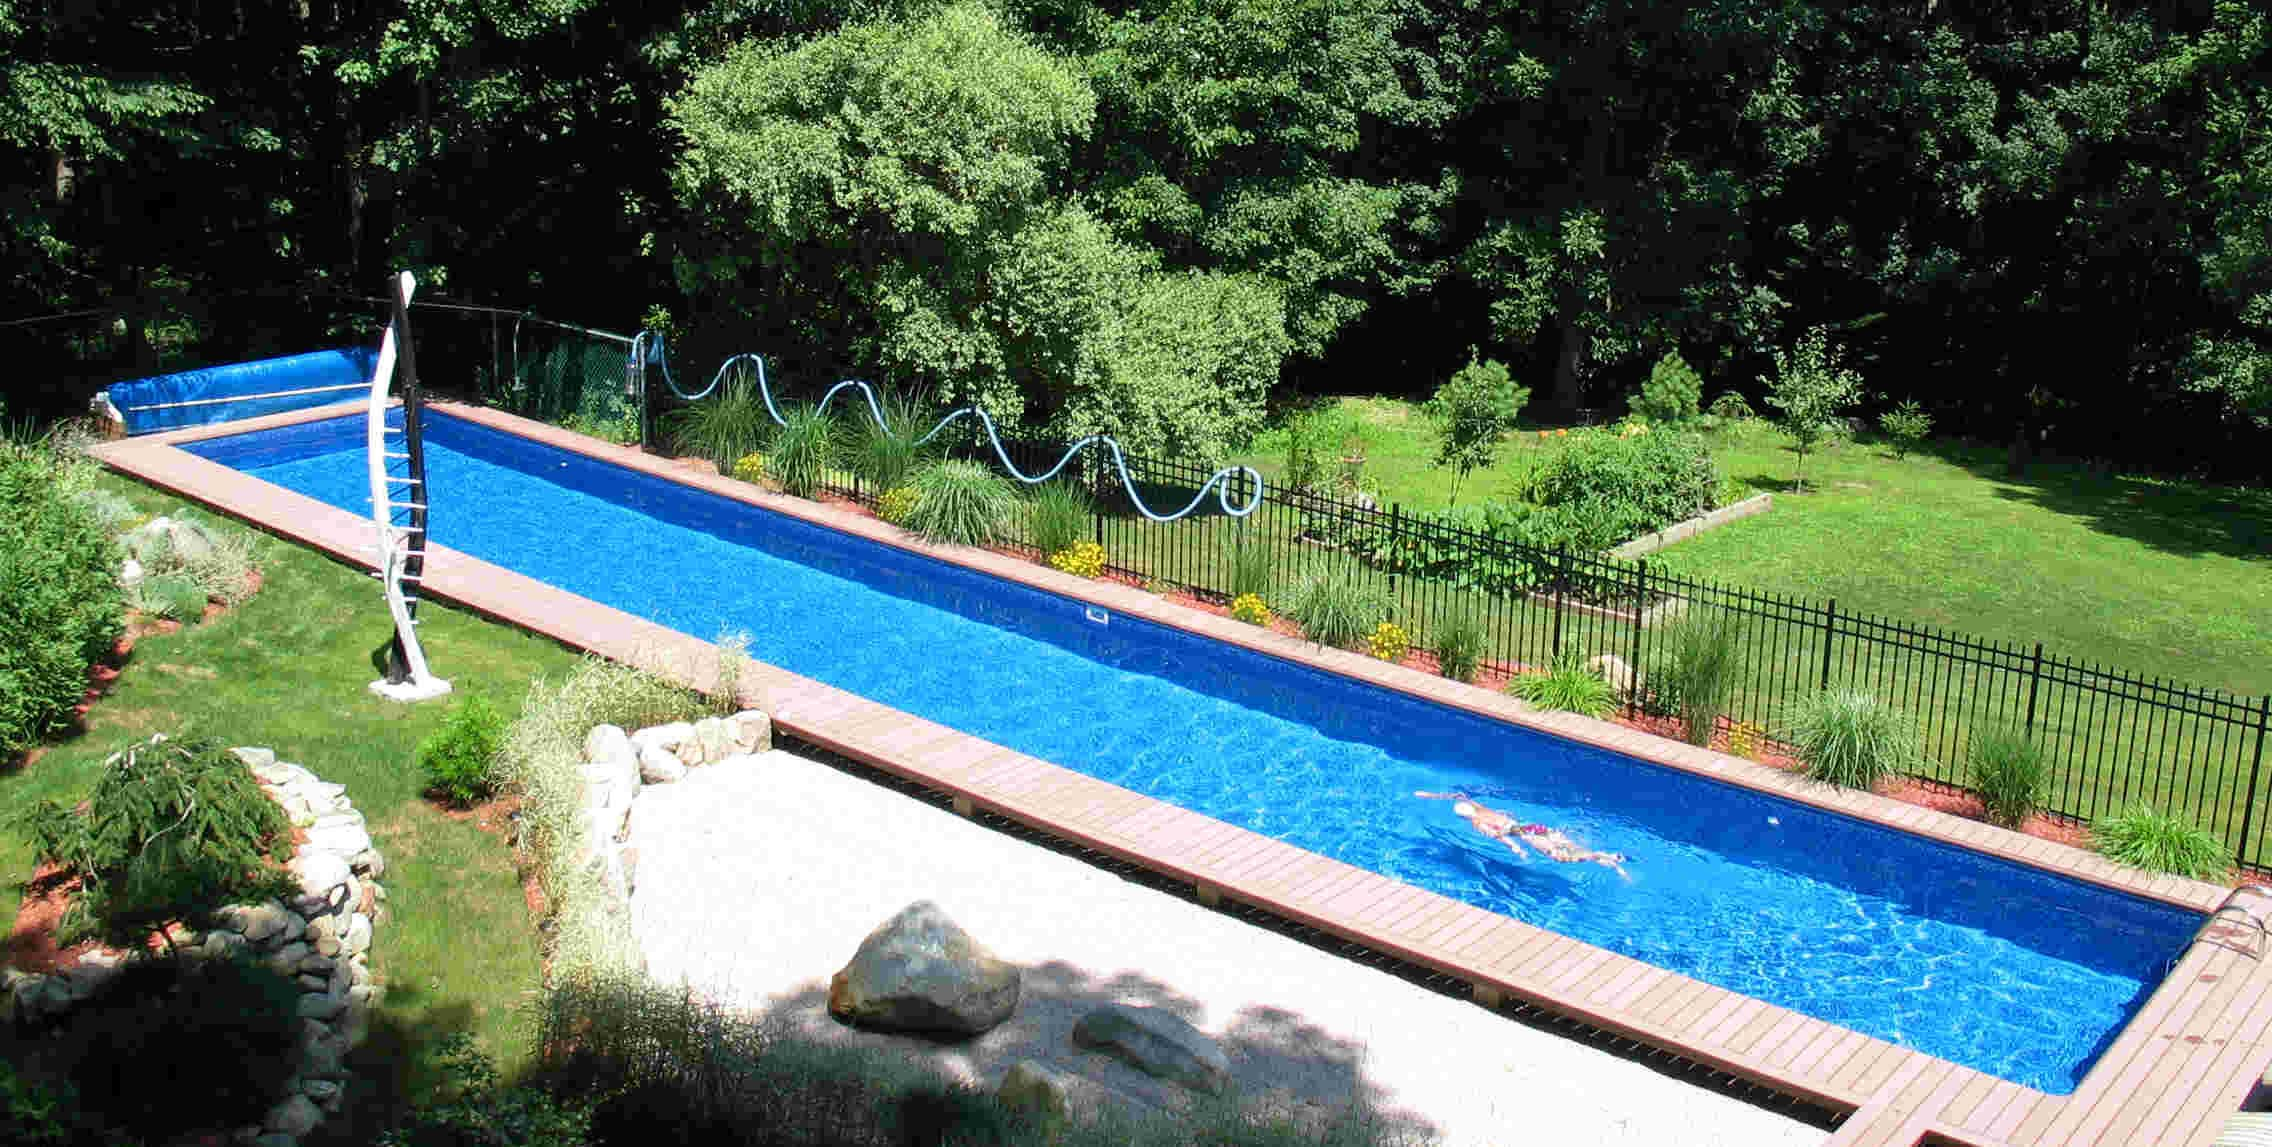 Diy inground swimming pool backyard design ideas for Inground swimming pool designs ideas